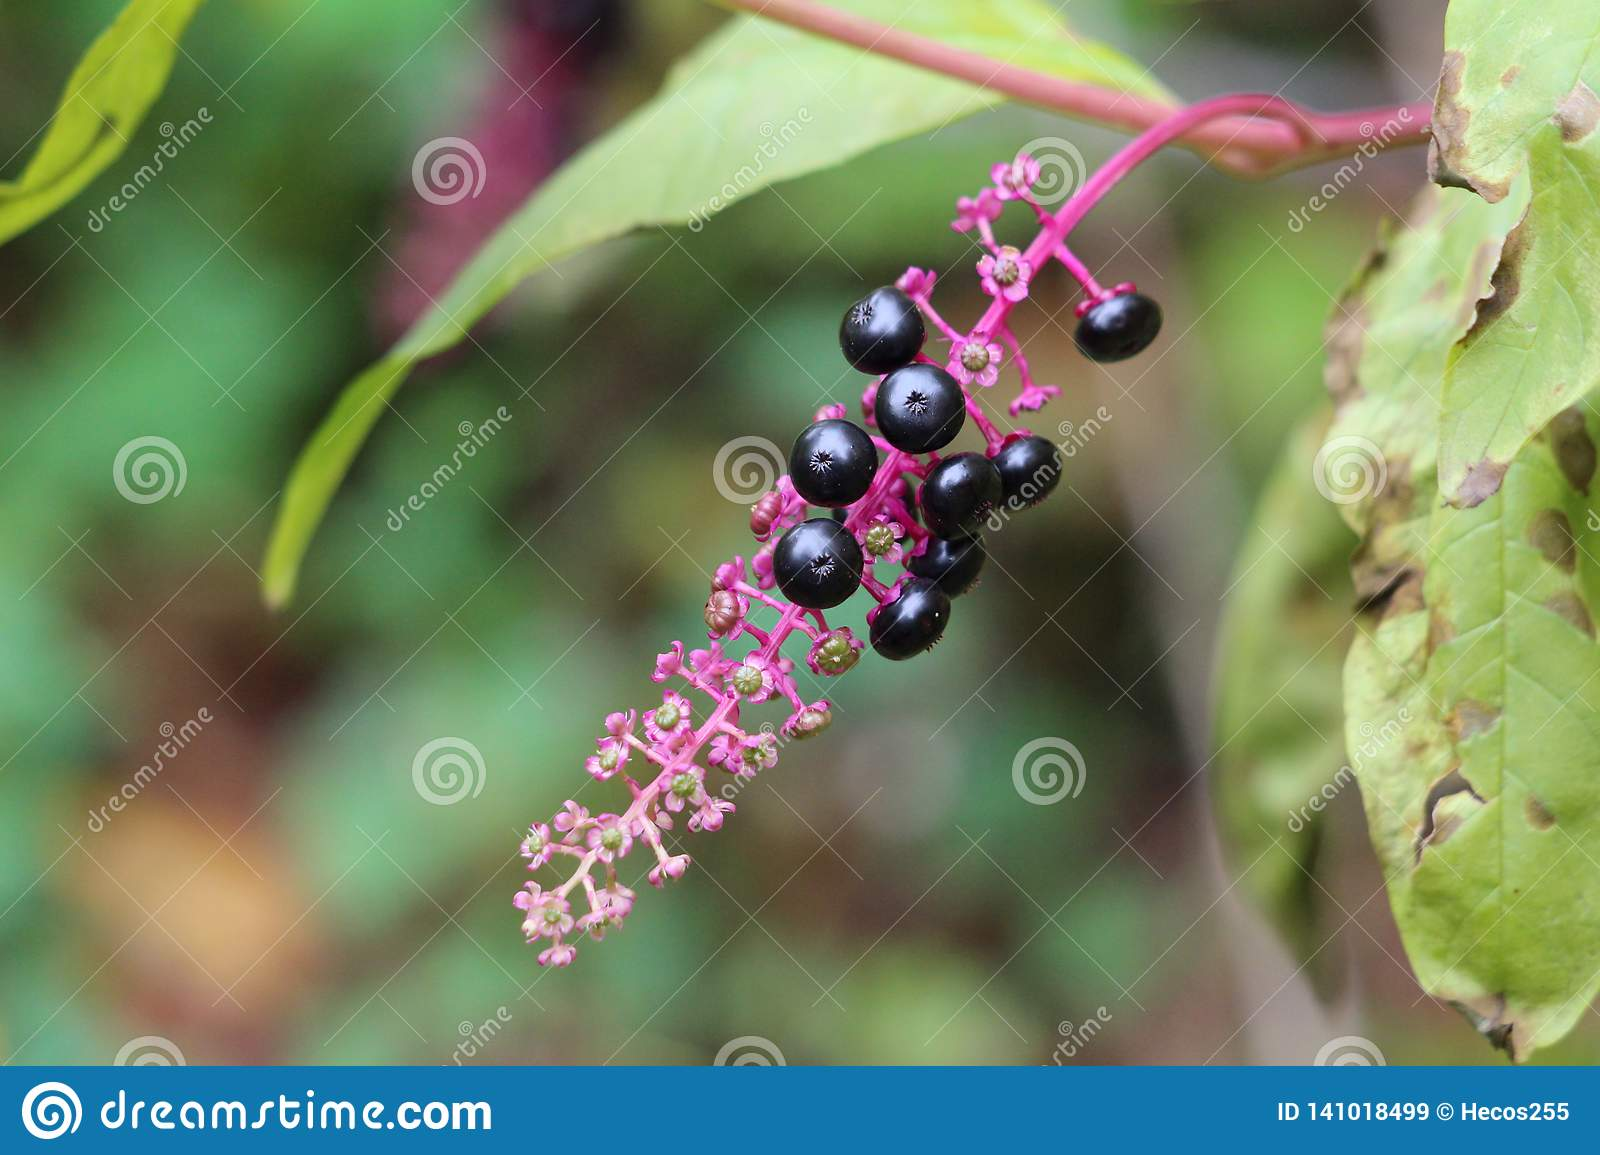 Pokeweed Or Phytolacca Americana Poisonous Herbaceous Perennial